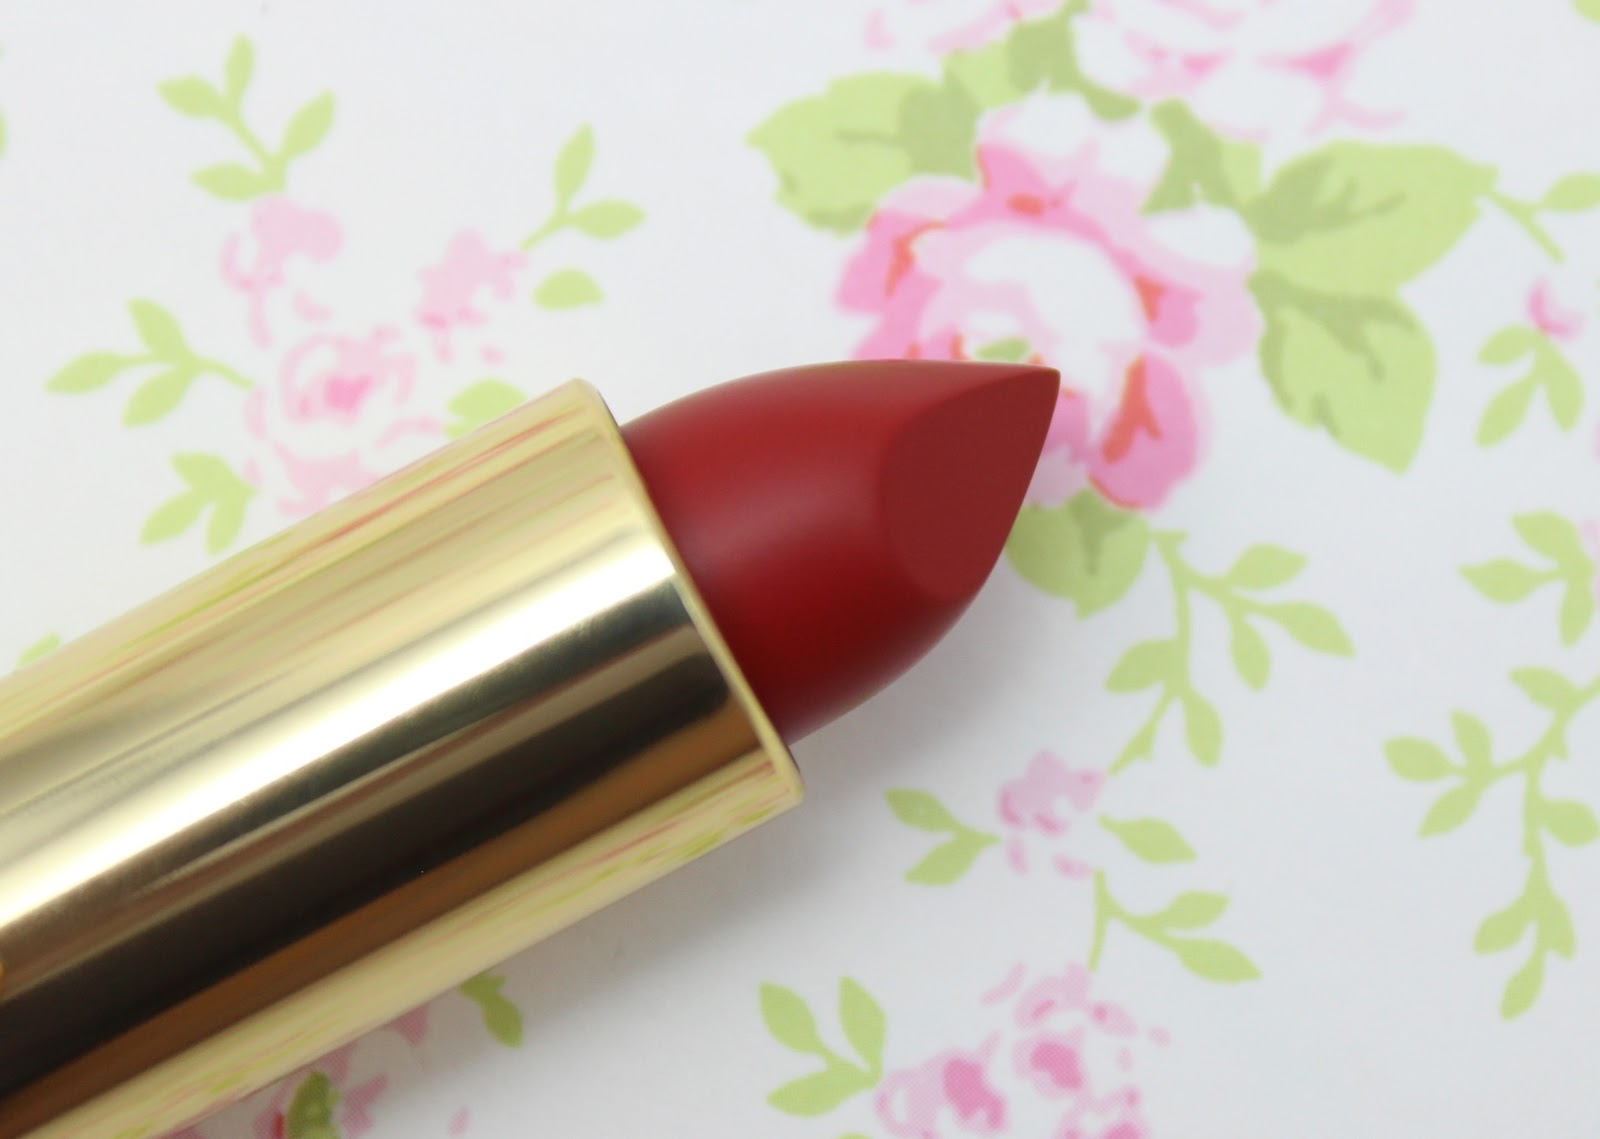 L'Oreal Color Riche Collection Exclusive Reds Lipstick - Eva's Red review